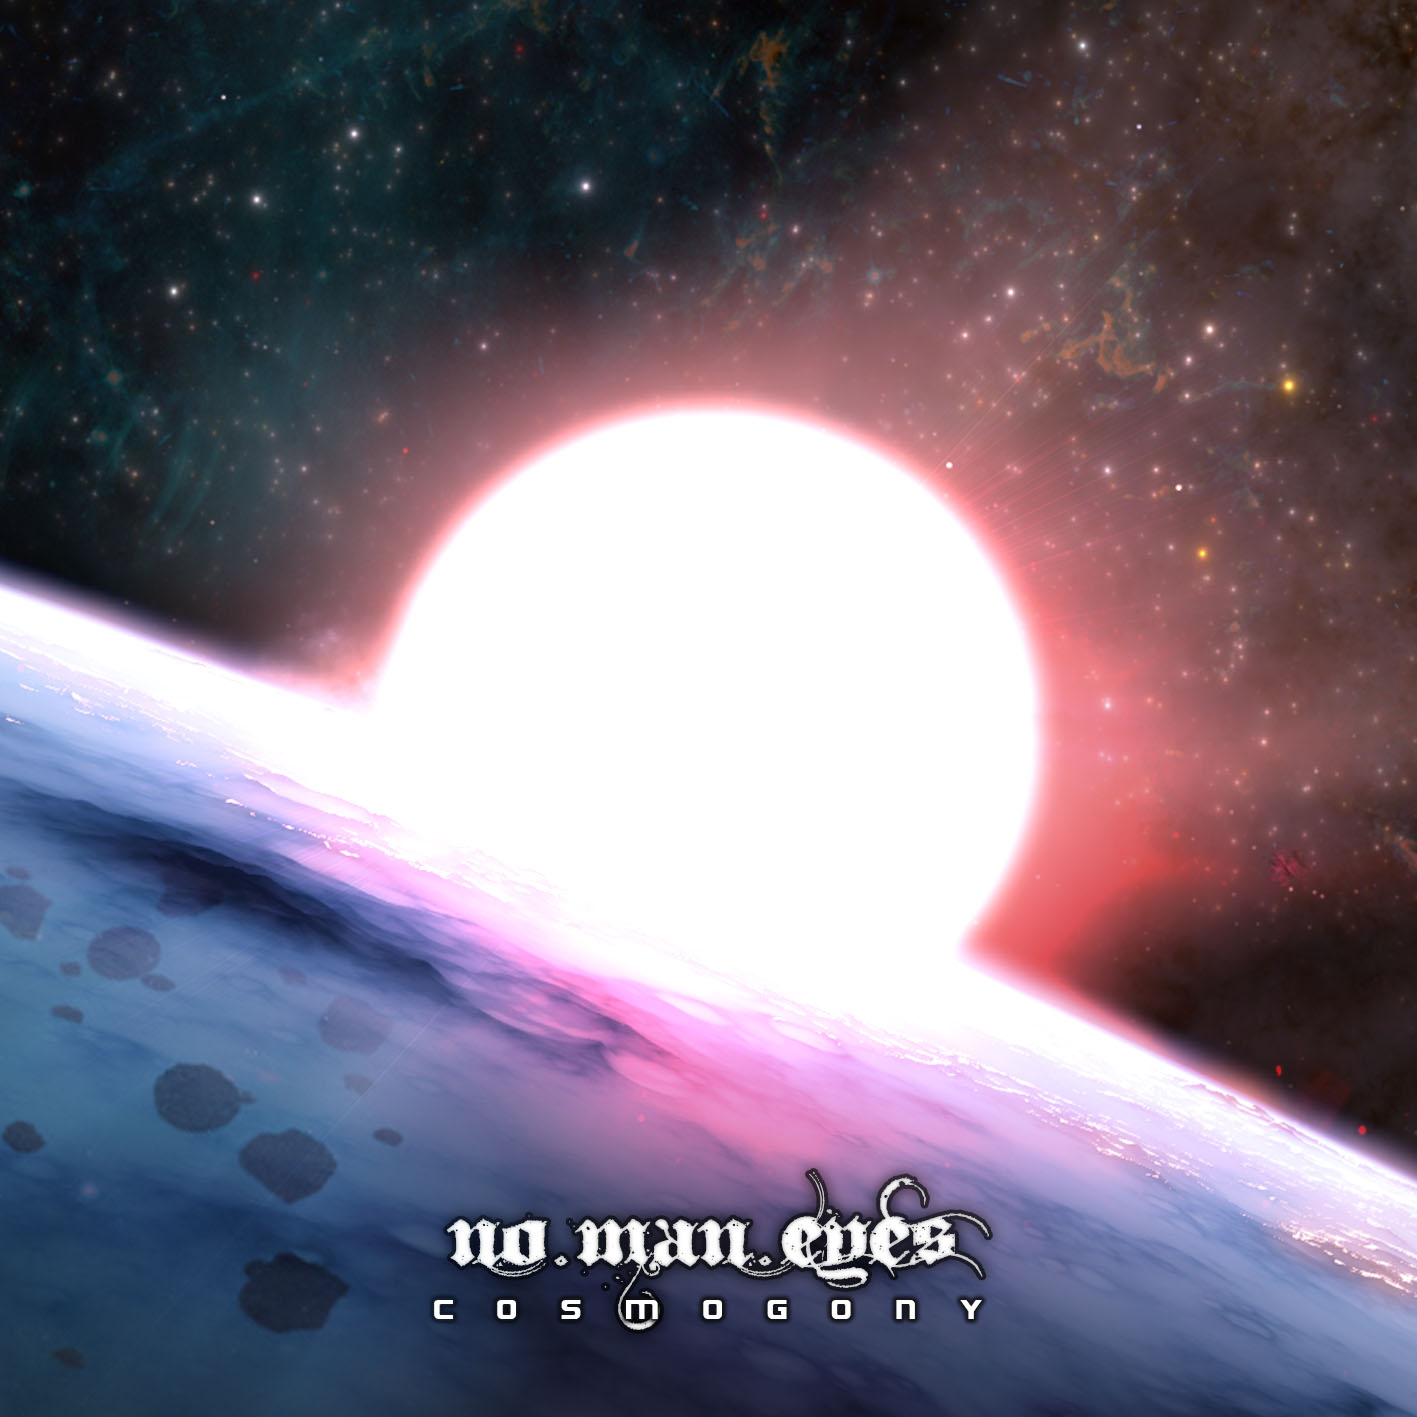 cosmogony-no-man-eyes